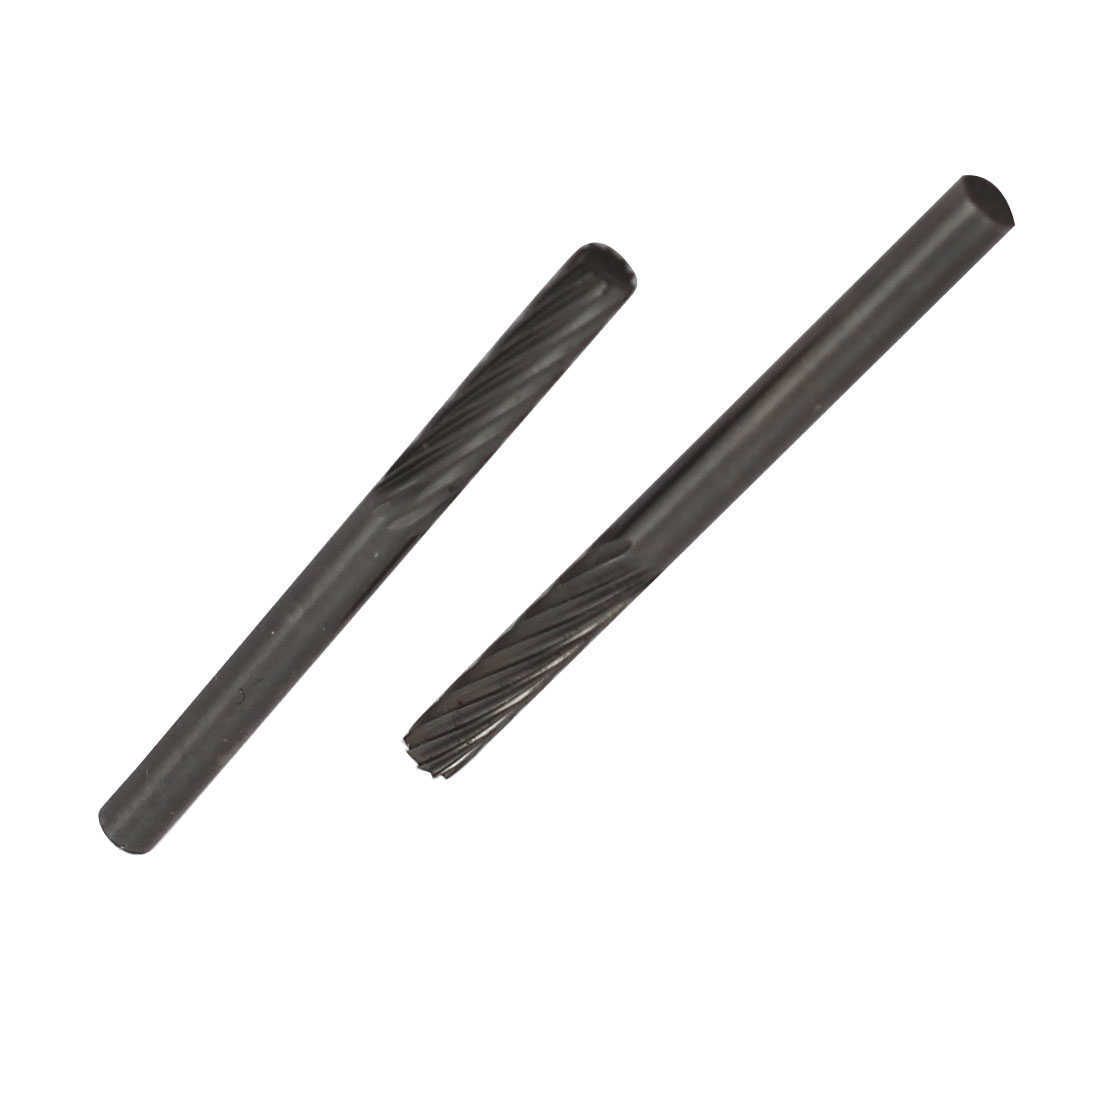 1/8' Dia Head Tungsten Carbide Single Cut Cylinder Shaped Rotary File 2pcs